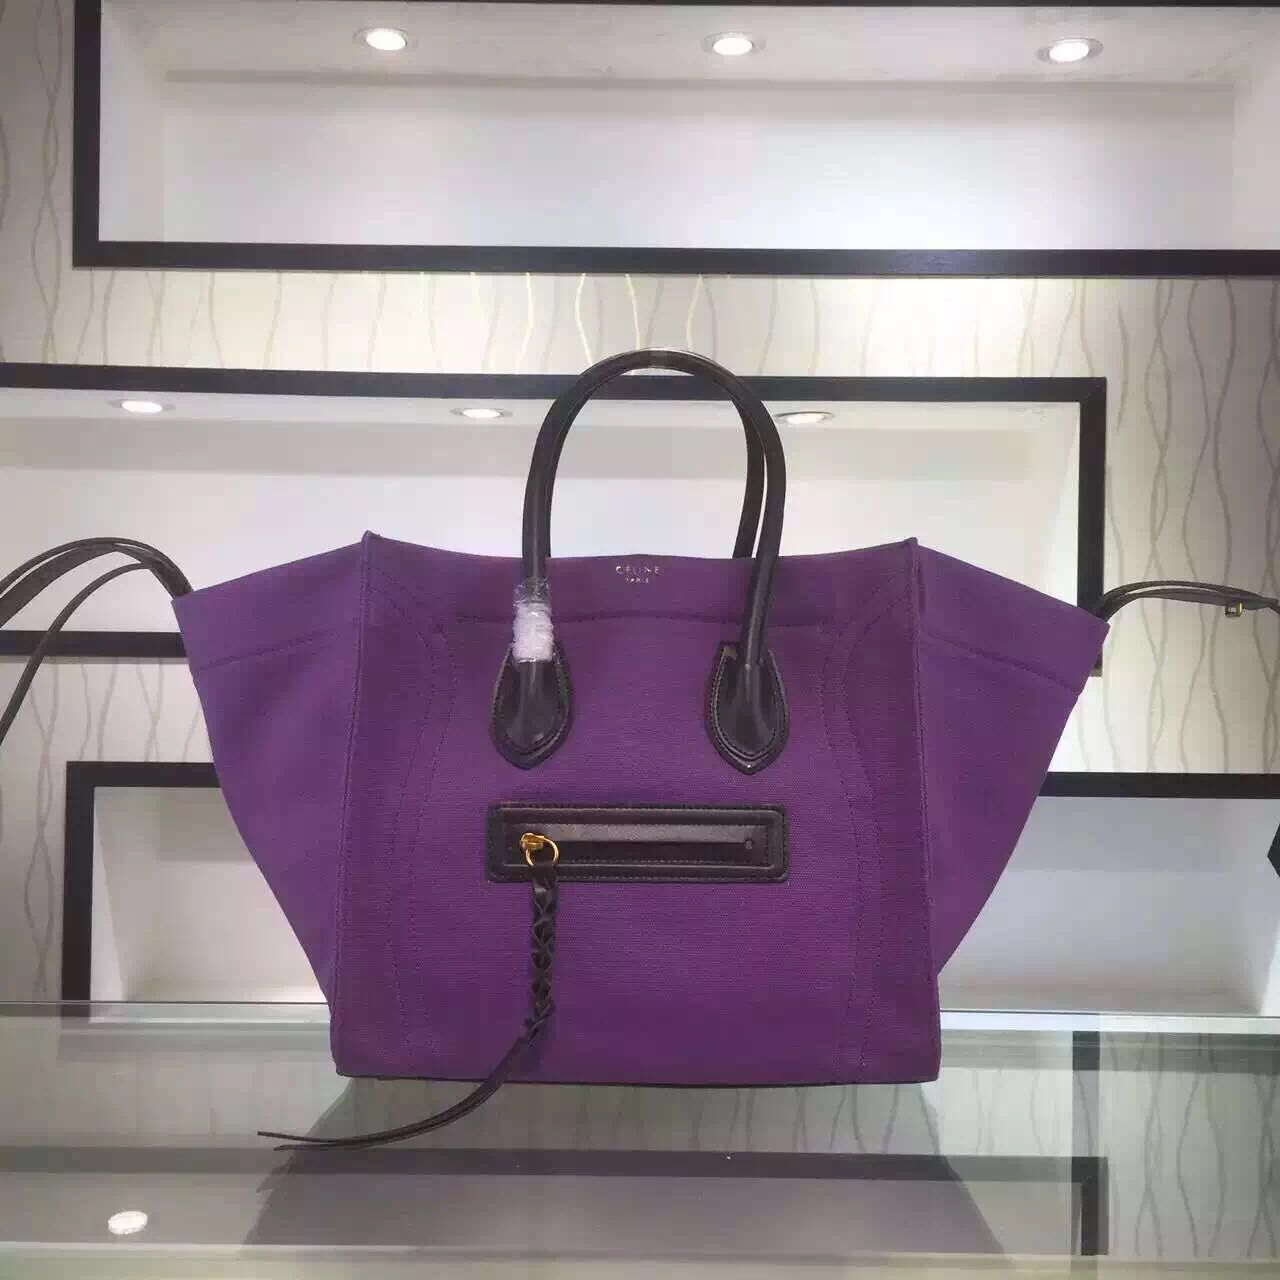 S/S 2016 Celine Cheap Bags Outlet Online -Celine 30CM Luggage Phantom Handbag in Black Leather and Purple Canvas